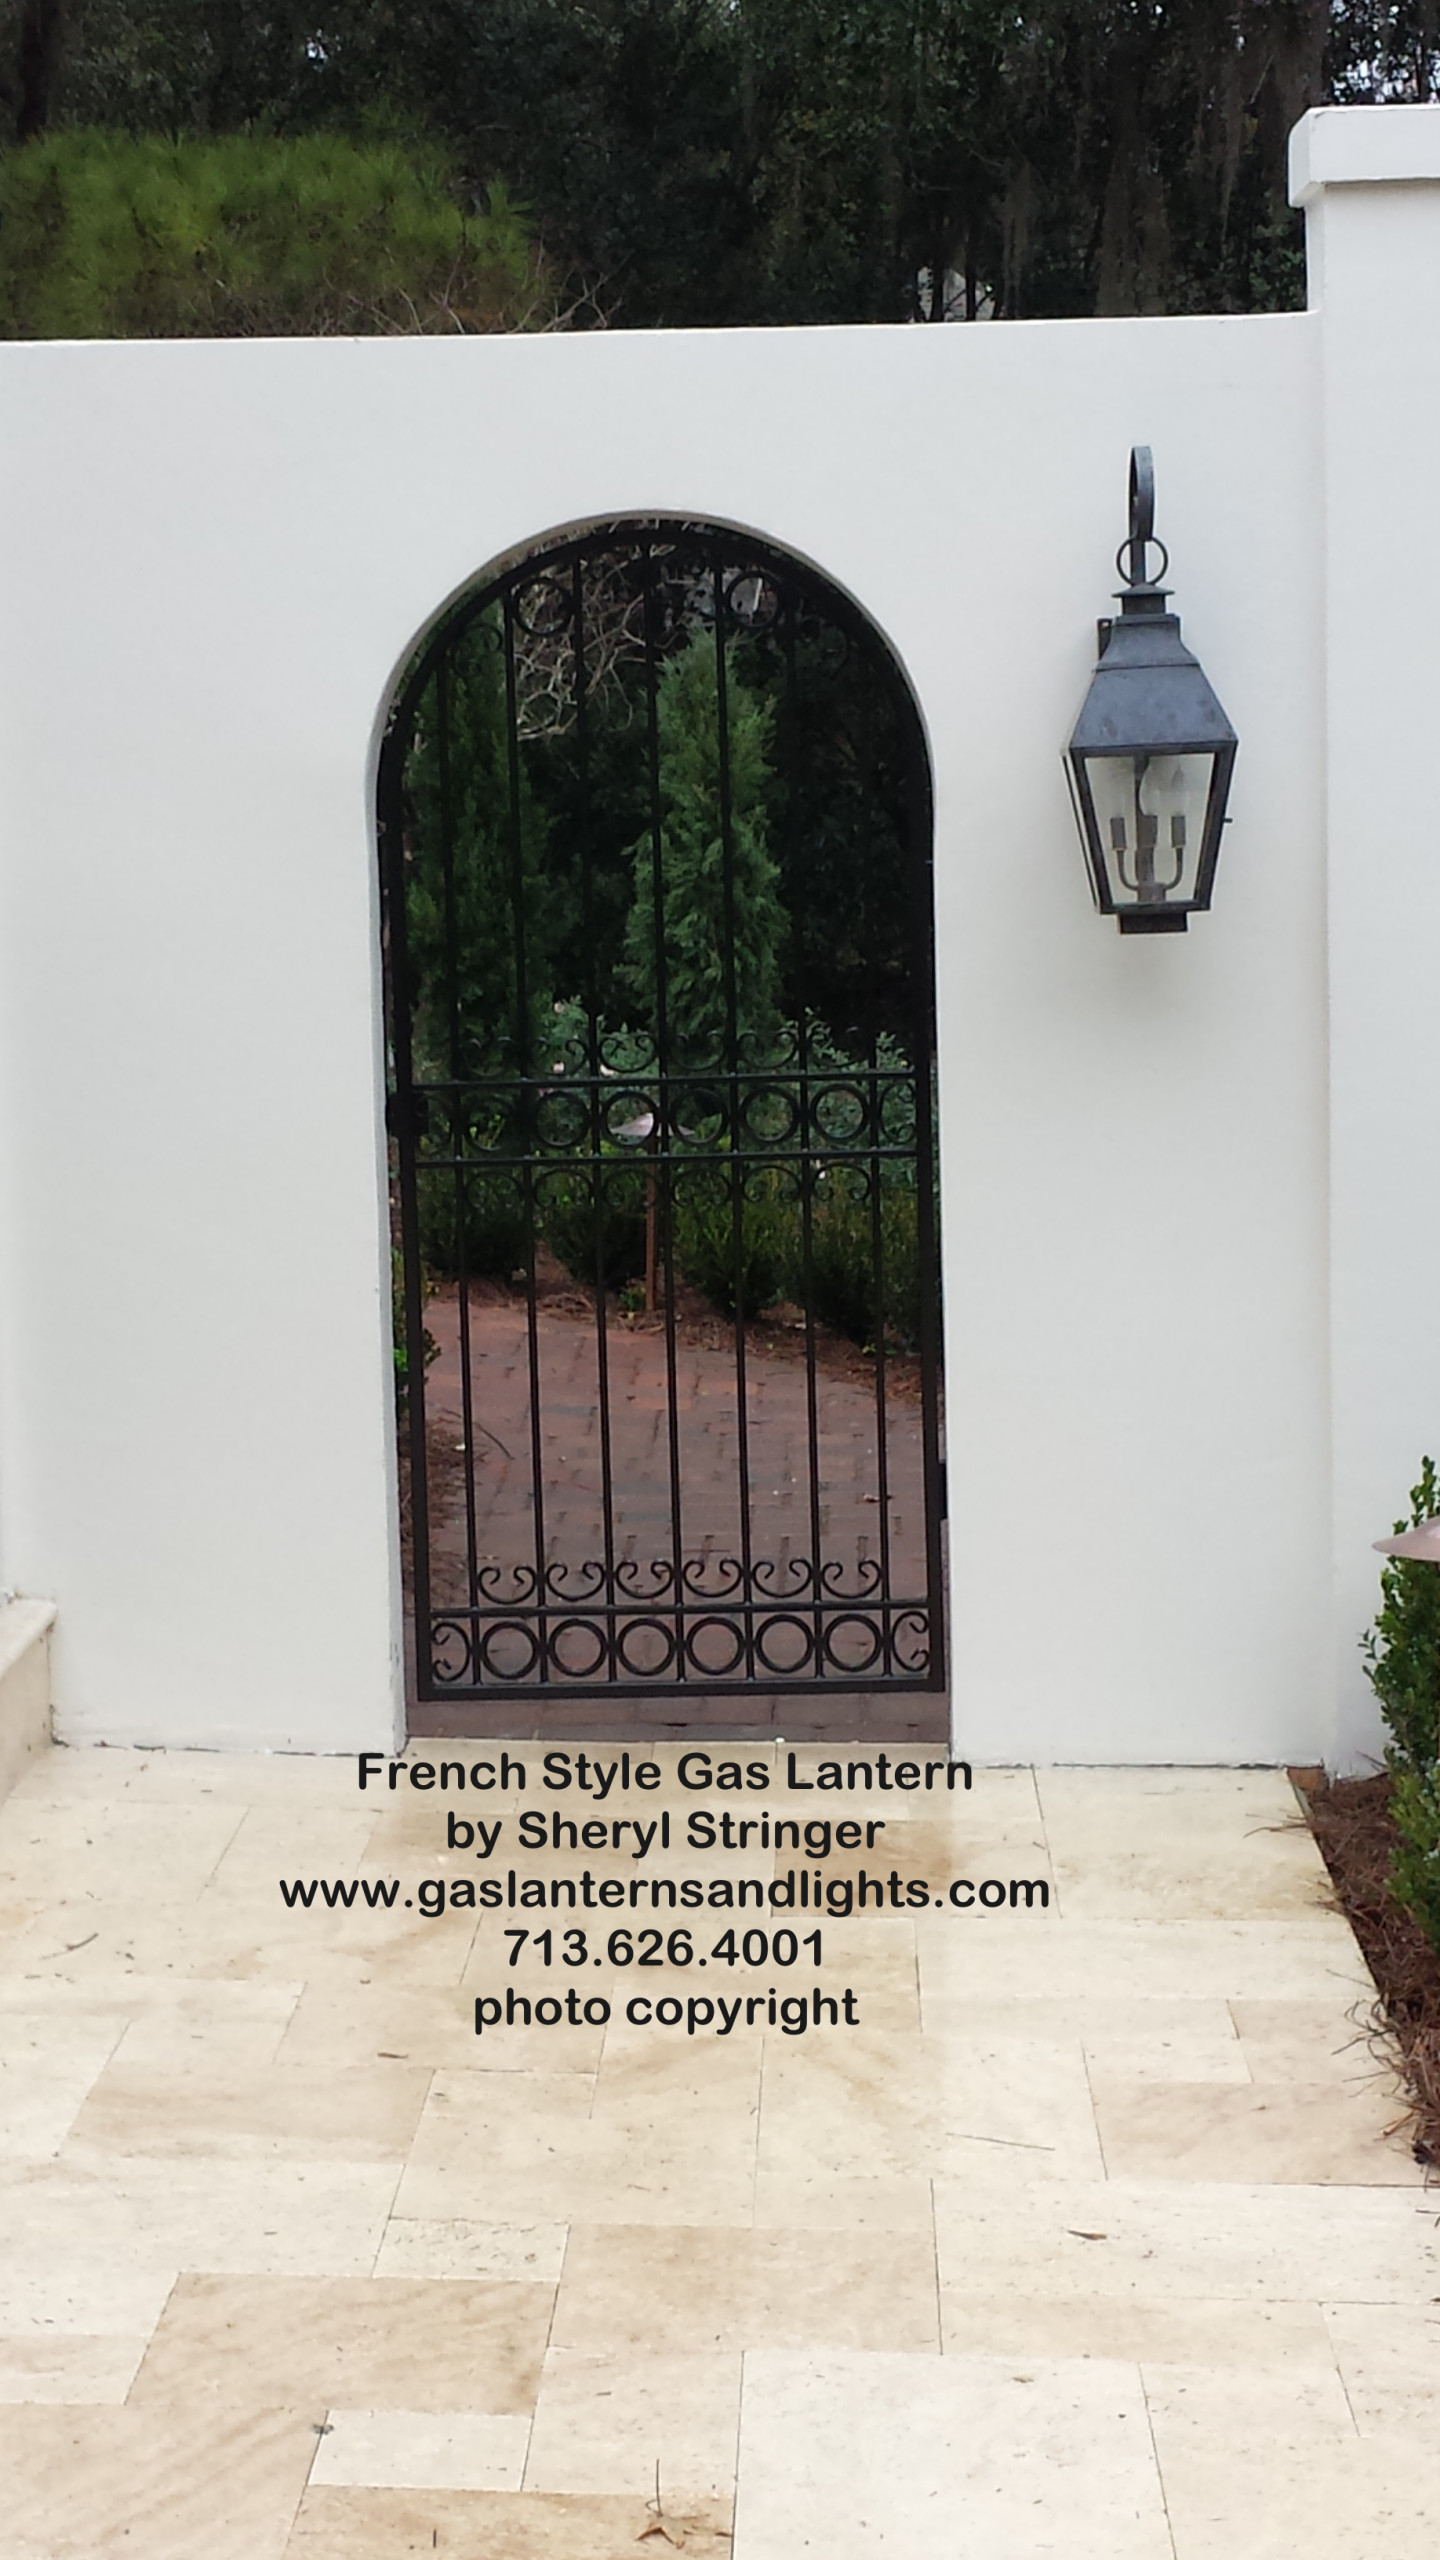 Sheryl's French Electric Lantern with Solid Top and Dark Patina